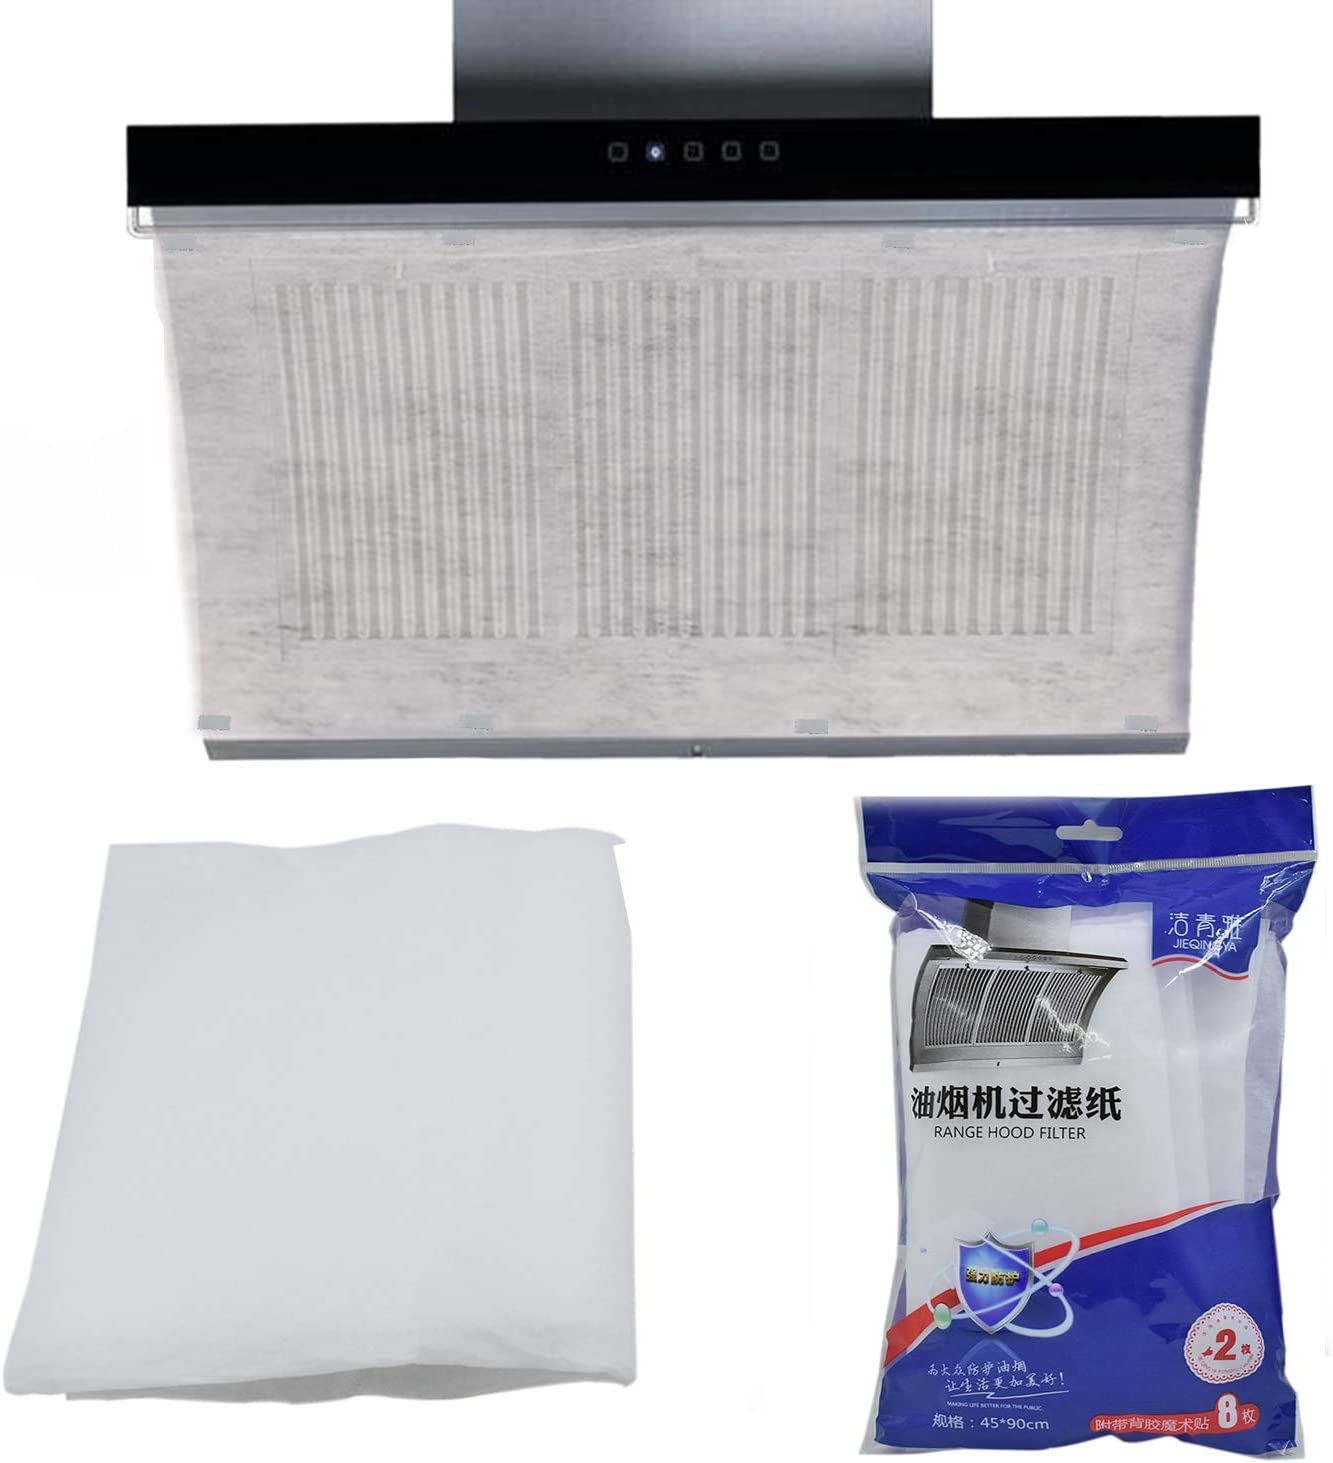 LiXiongBao Cooker Hood Filter Home Range Hood Oil Proof Stain Filter Stickers Oil-Absorbing Paper.17.72 inches X 35.43 inches,Pack of 2